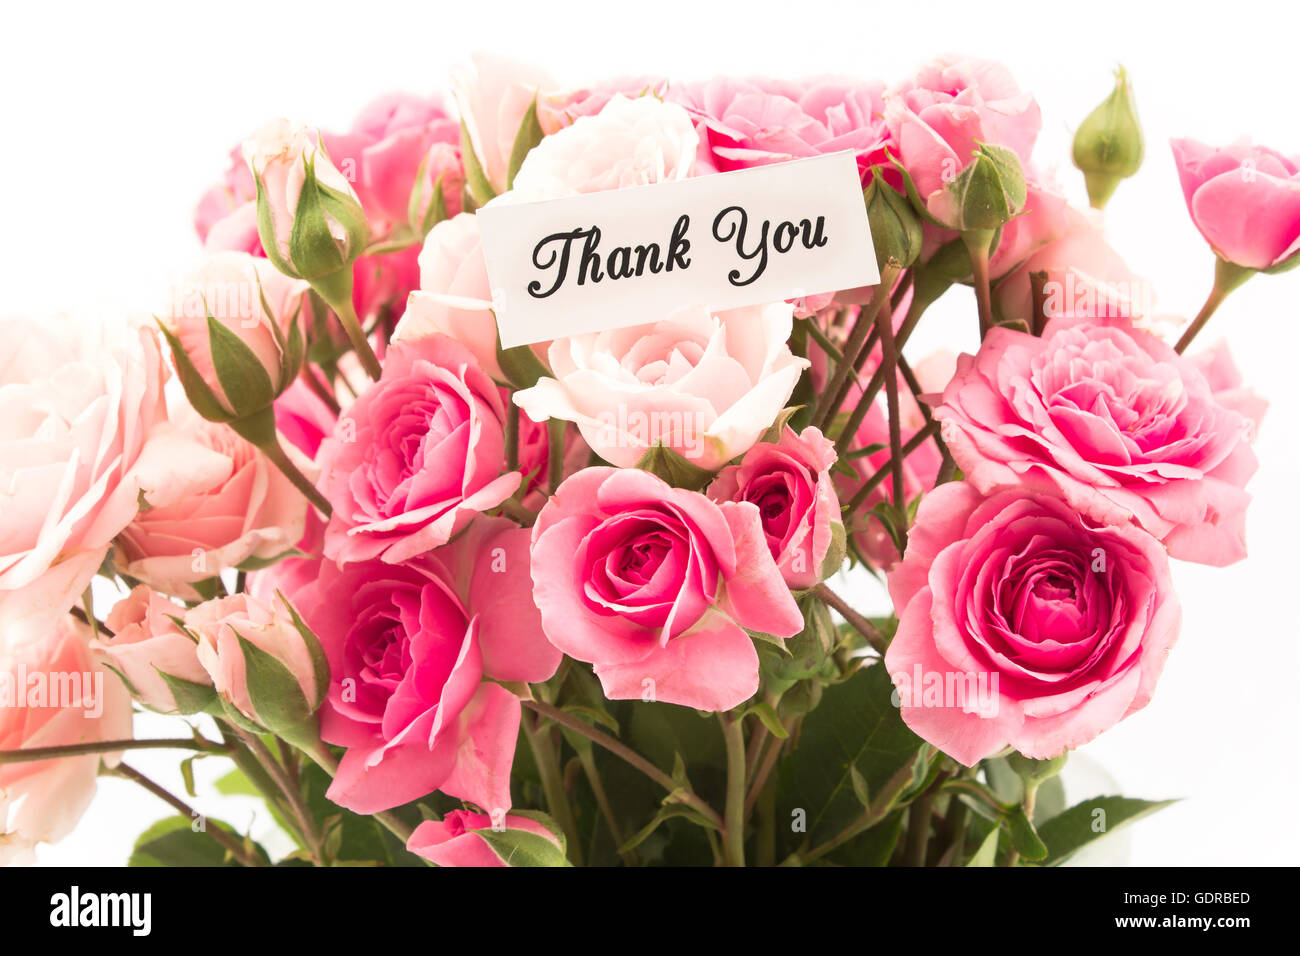 Thank You Card With Bouquet Of Pink Roses Stock Photo 111766661 Alamy